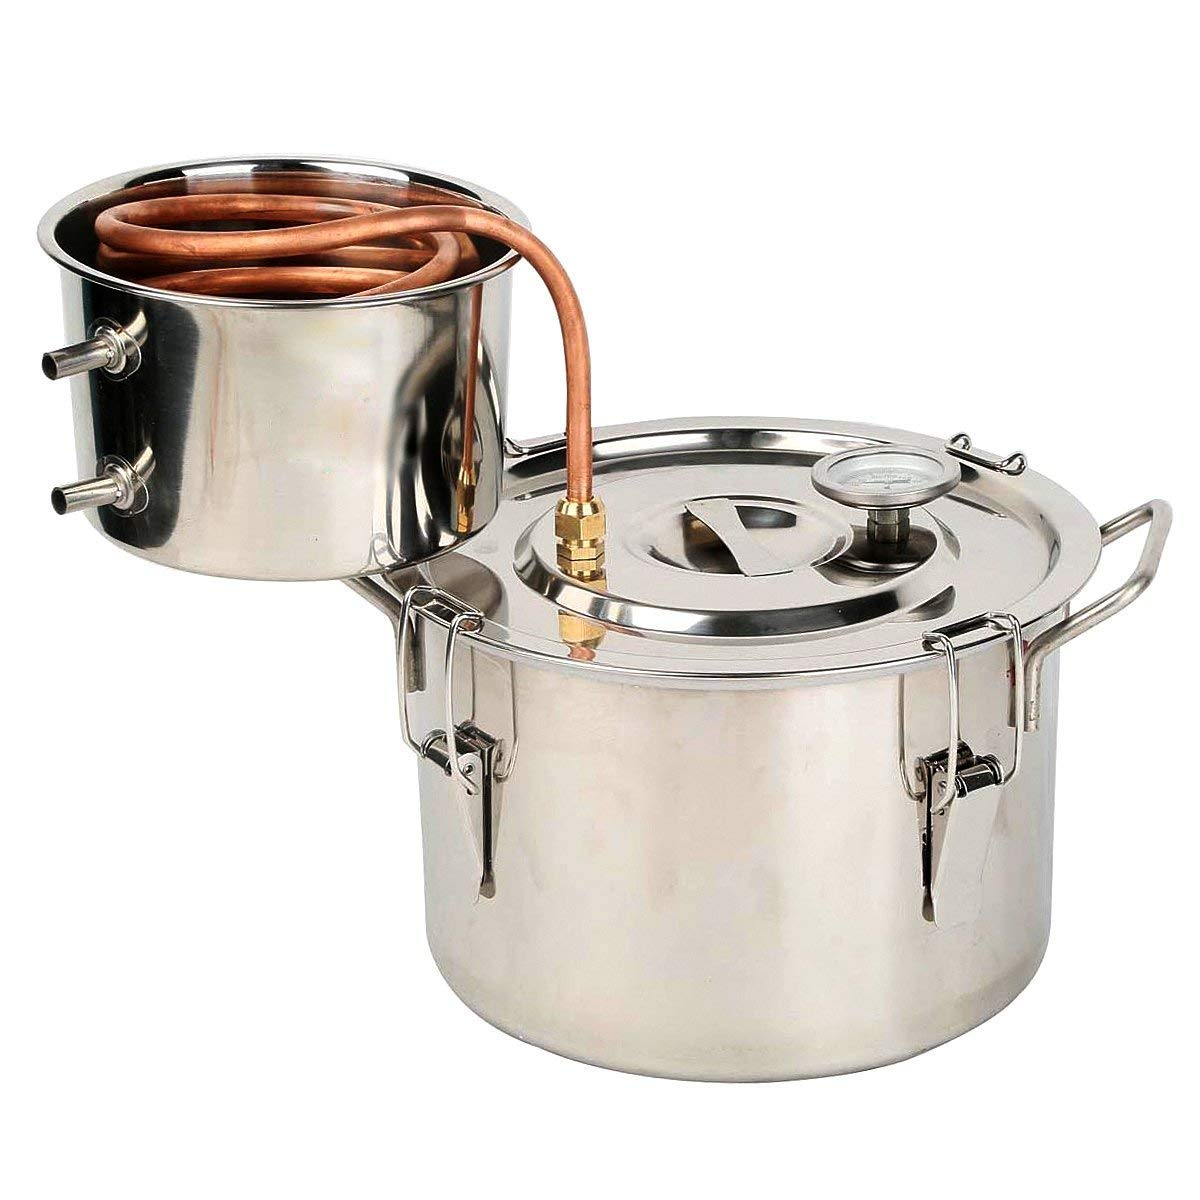 OLizee 2 Gallon Stainless Steel Water Alcohol Distiller Copper Home Brew Moonshine Still Spirits 8L Wine Making by OLizee